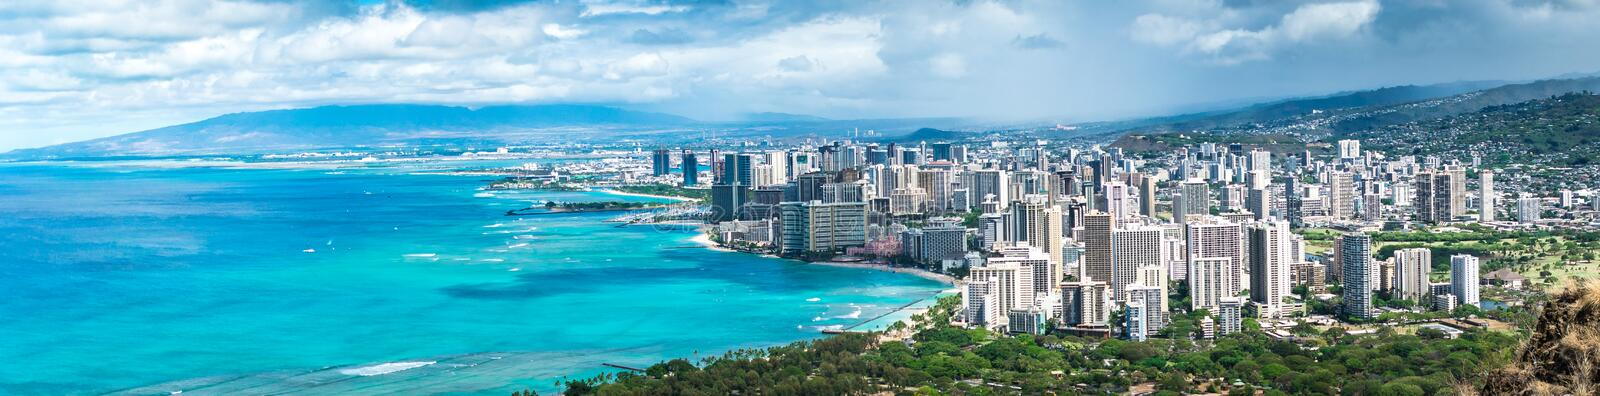 Waikiki Beach & Honolulu stock image